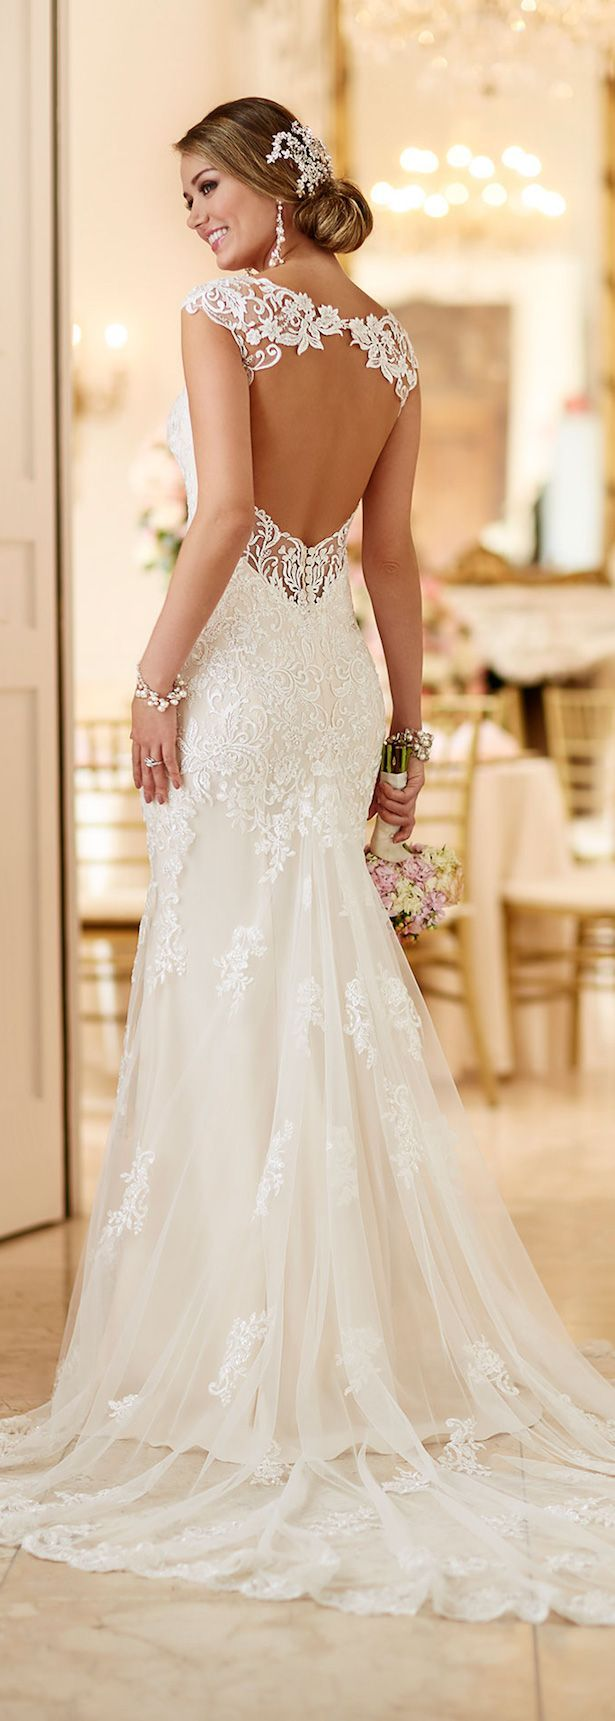 Best 25+ Spring wedding dresses ideas on Pinterest | Lace wedding ...